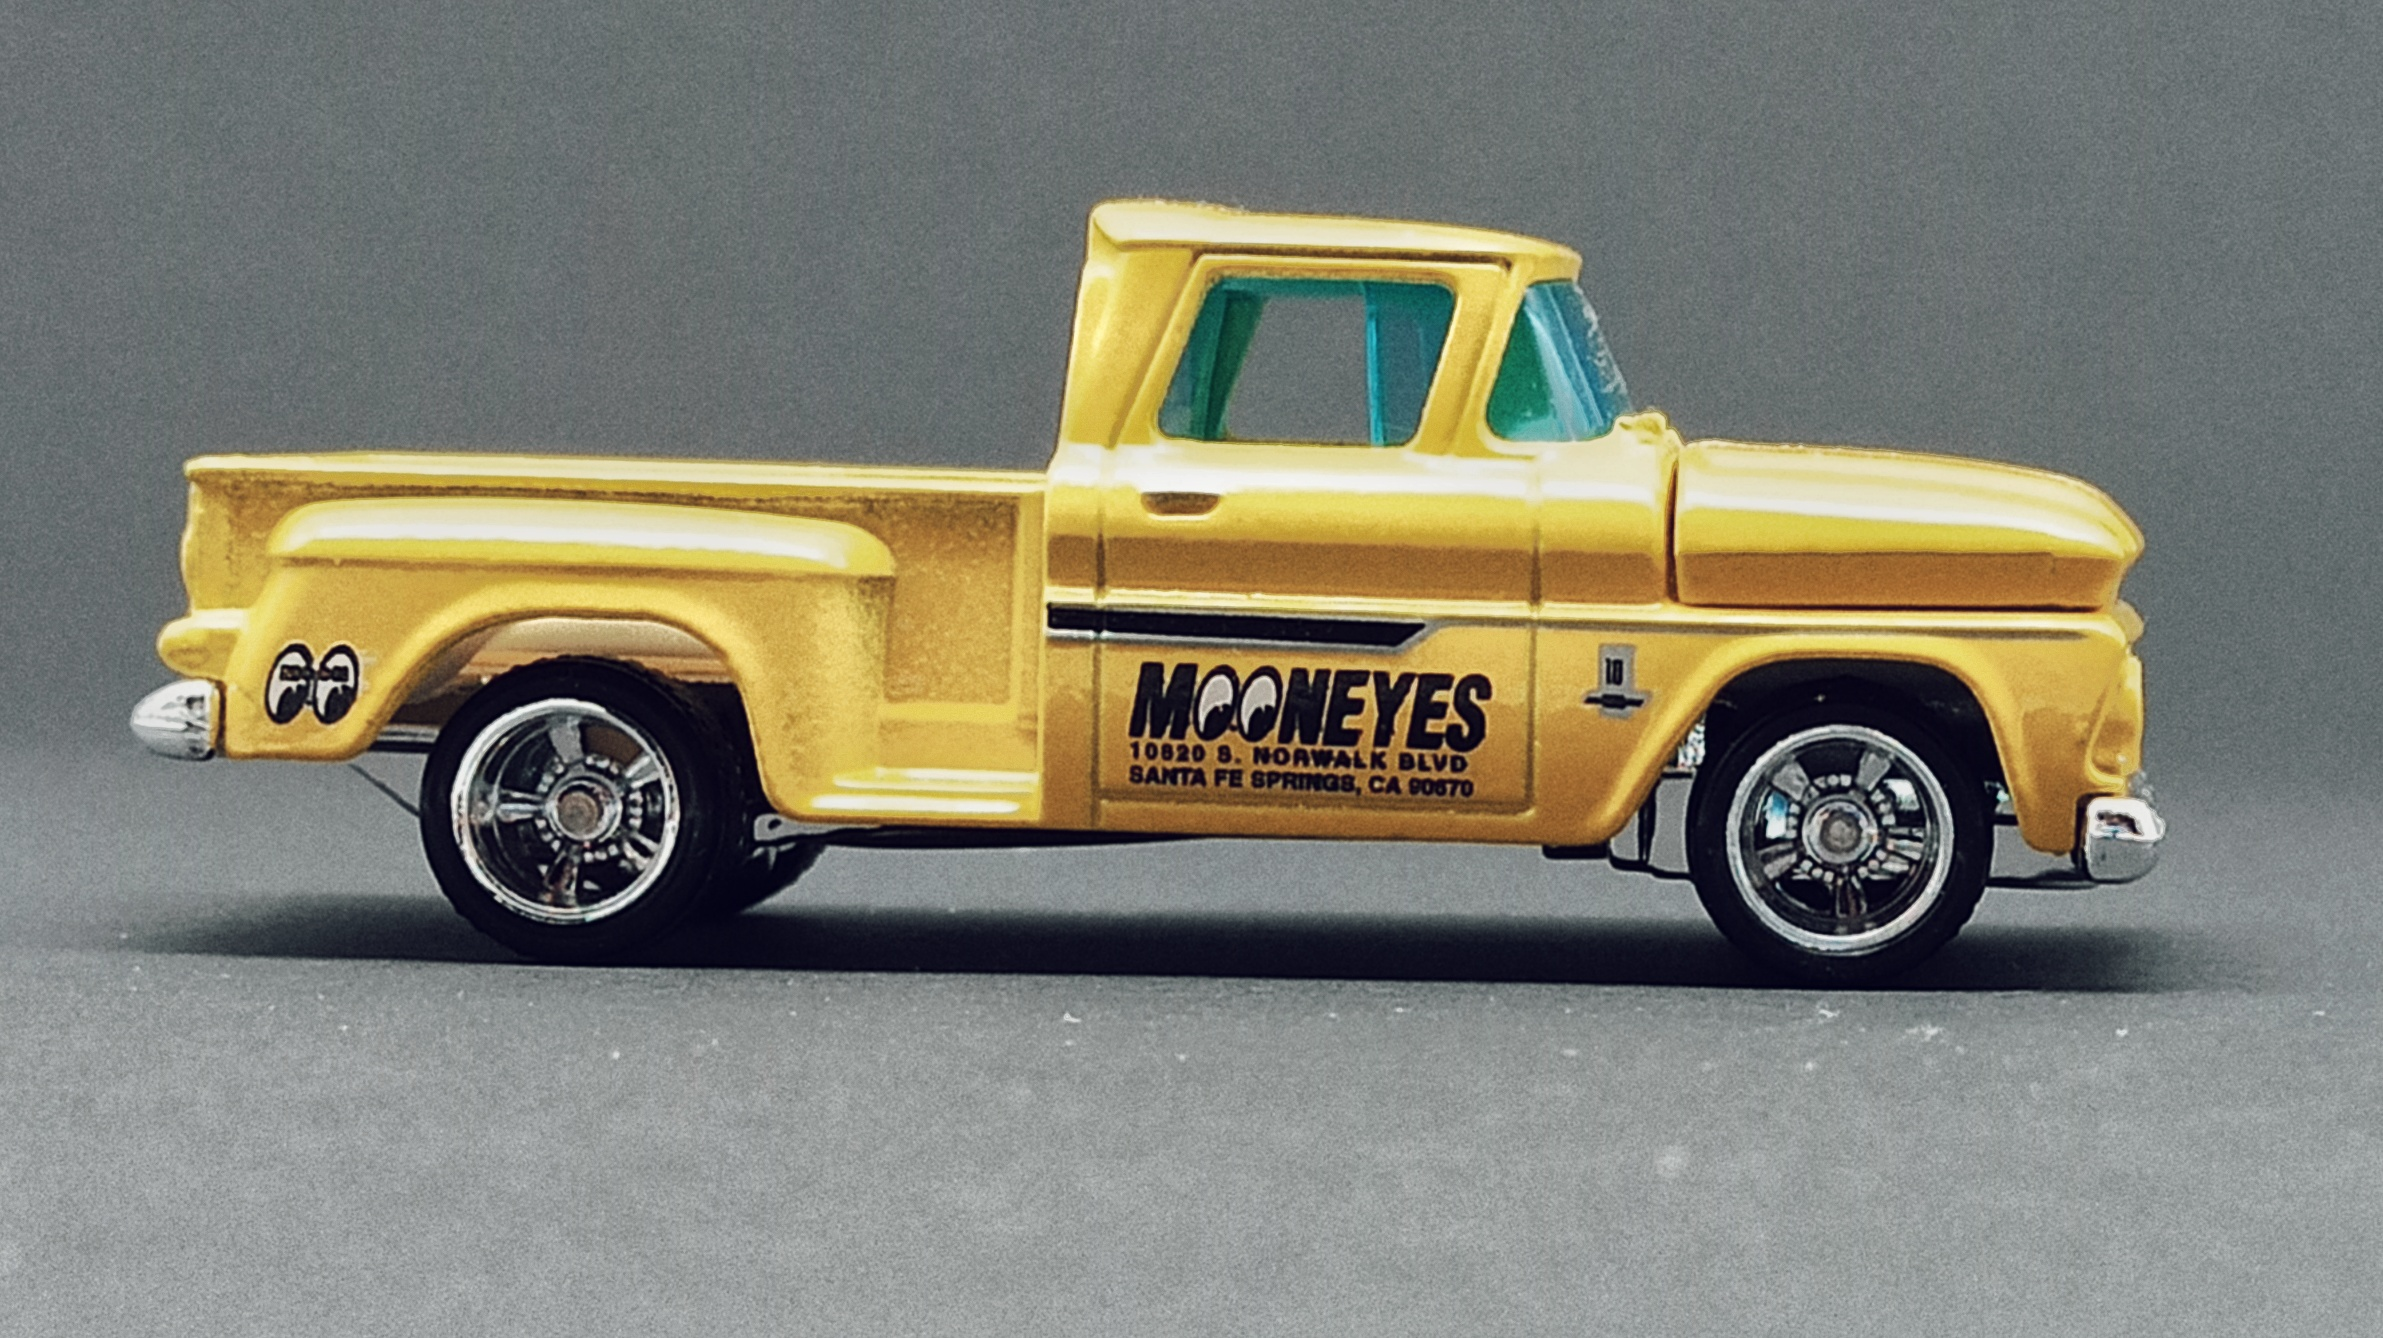 Matchbox Collectors Series '63 Chevy C10 Pickup Truck 1963 (GRK24) 2021 (3/20) yellow (Mooneyes) side